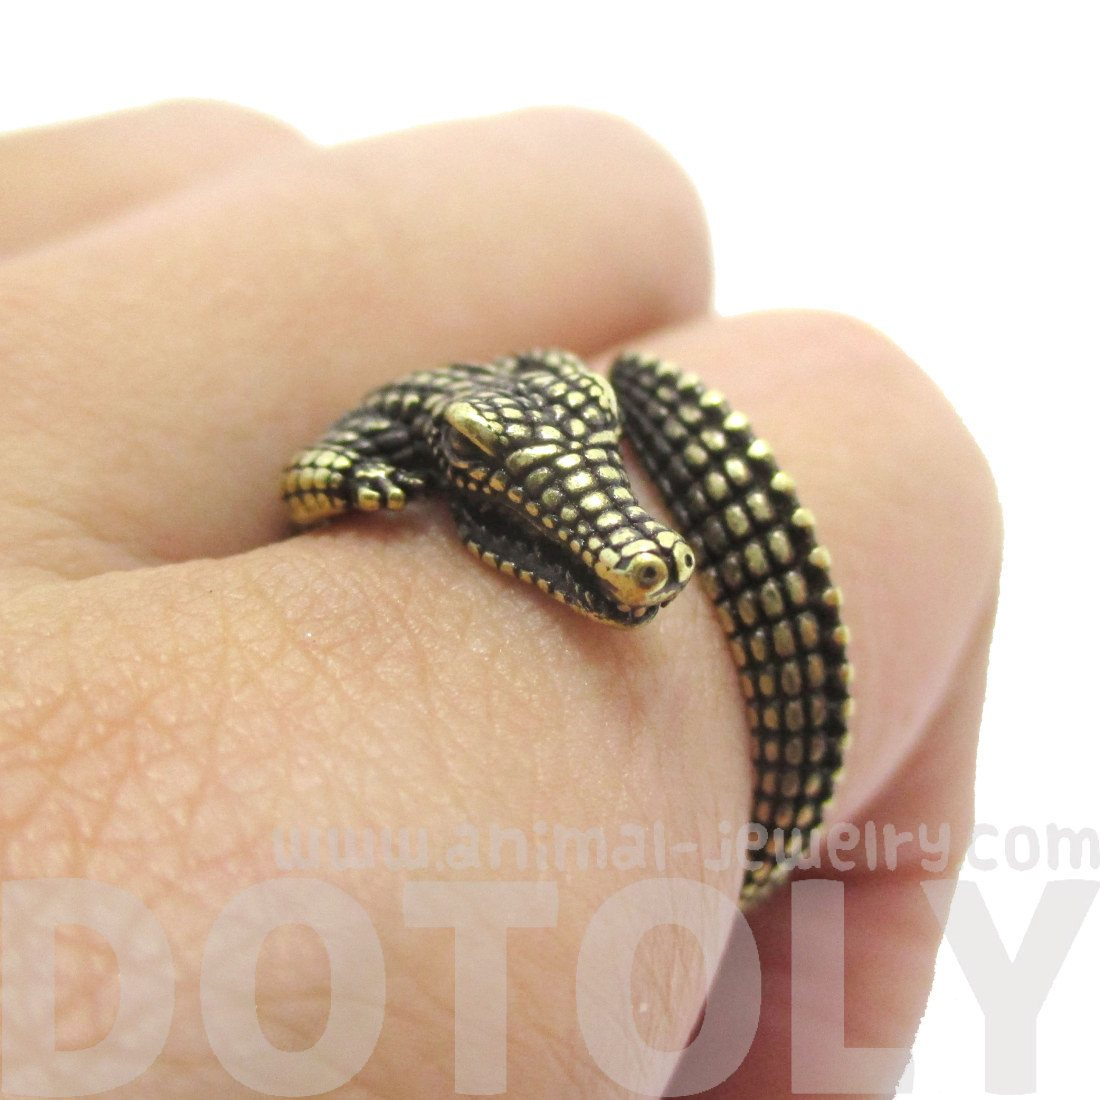 Crocodile Alligator Shaped Animal Wrap Ring in Brass